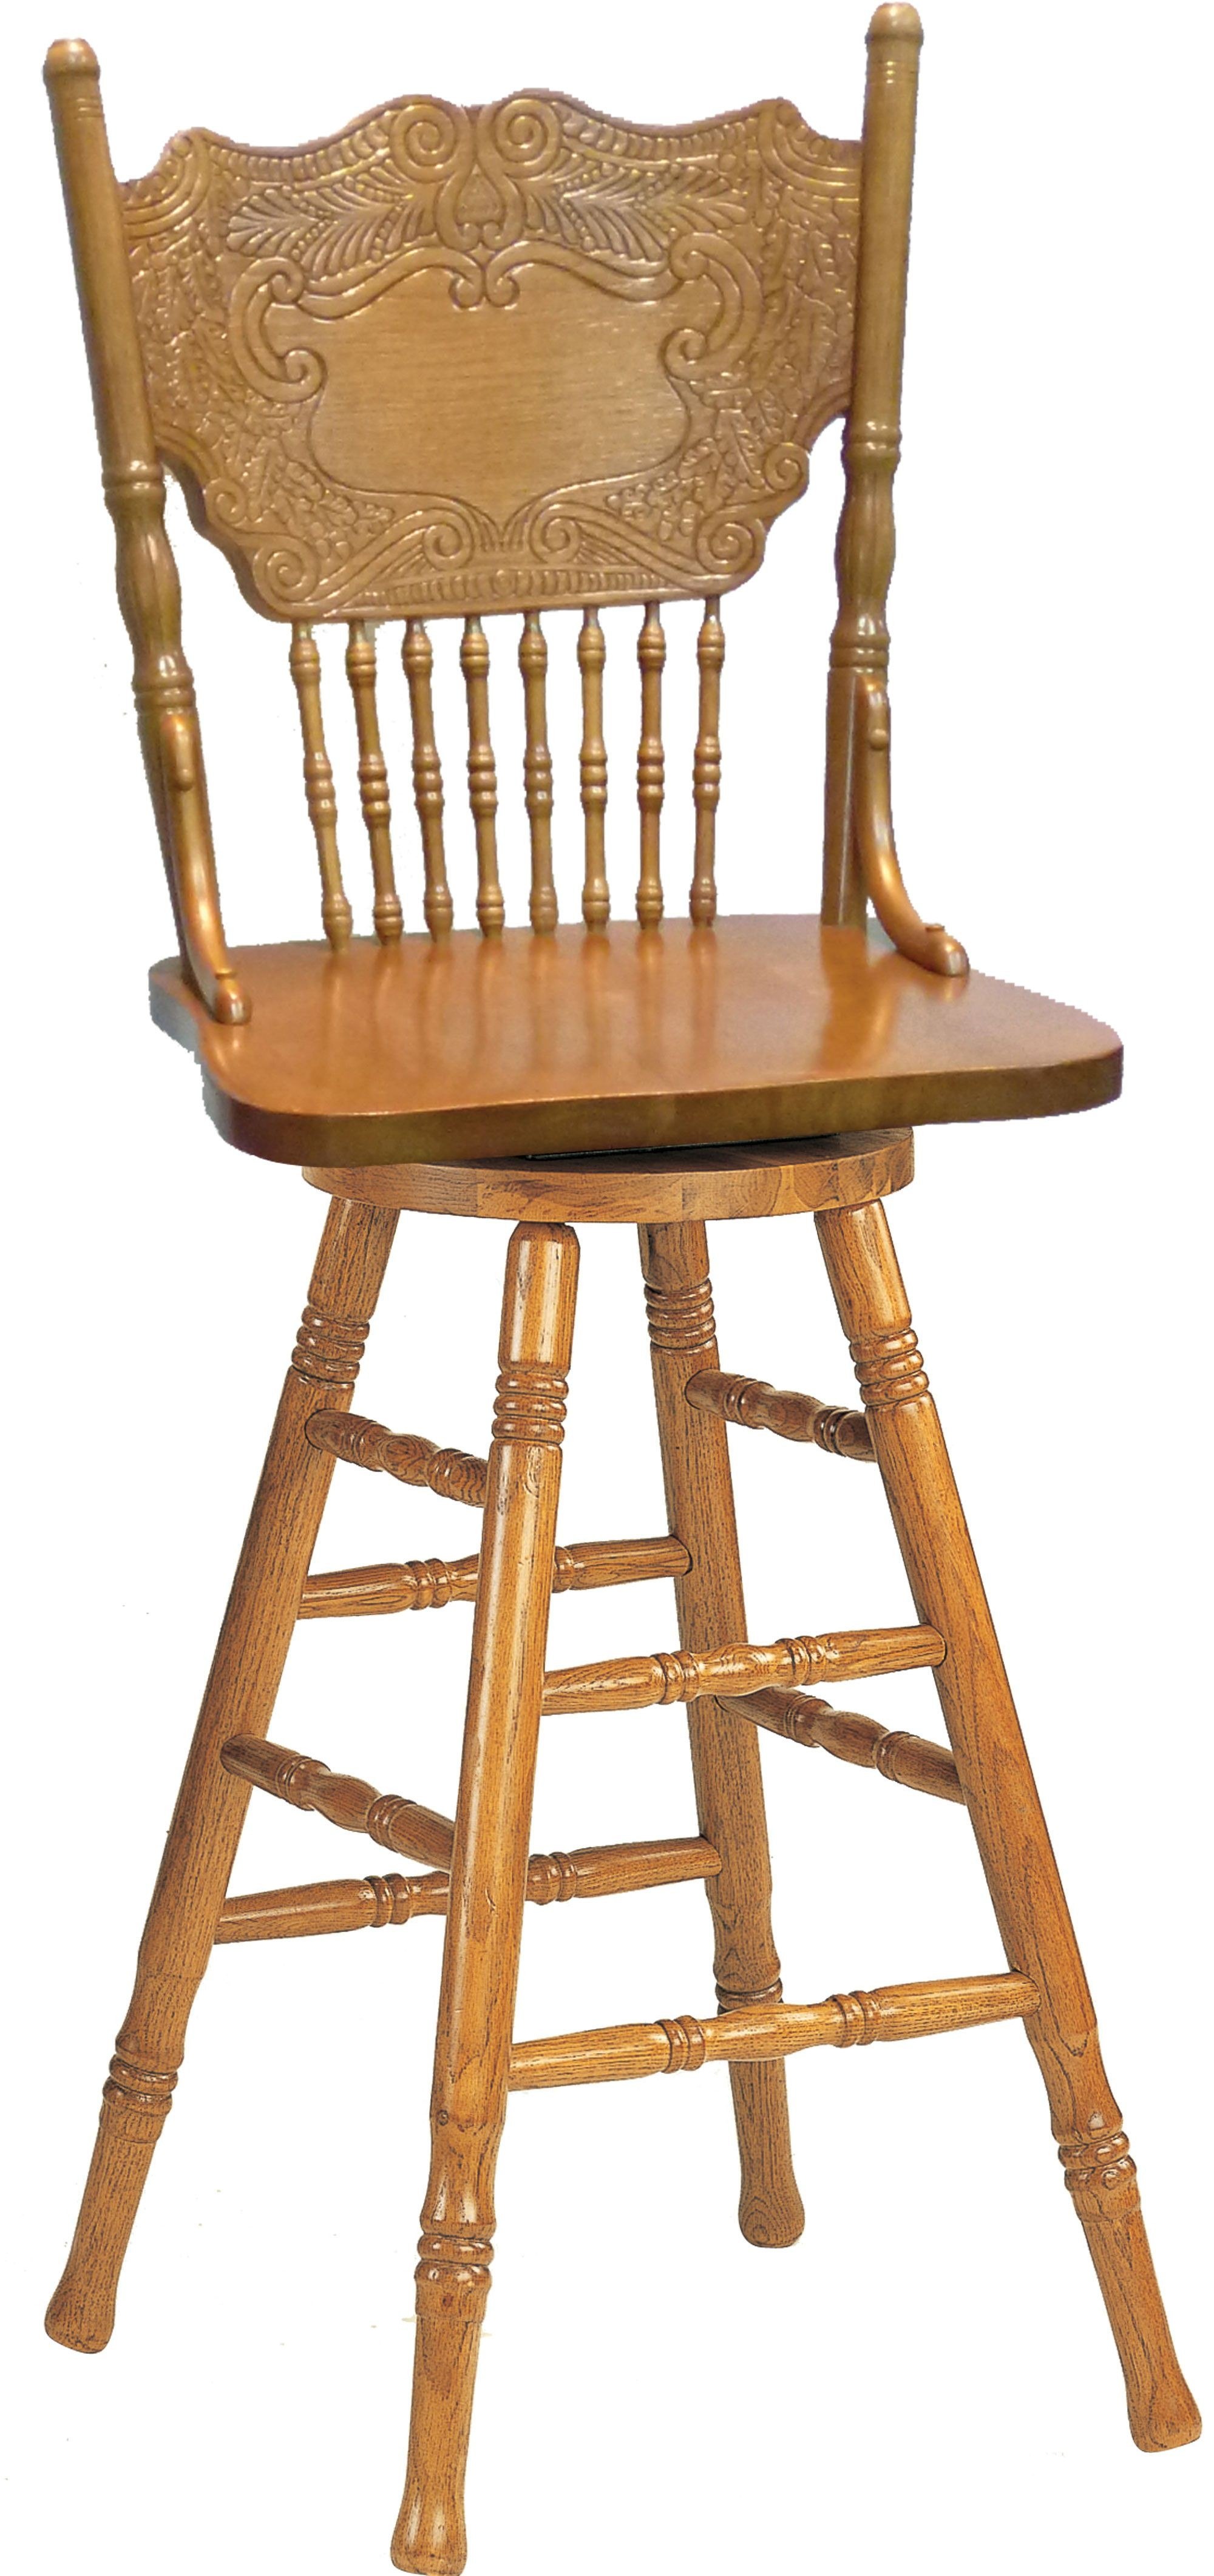 For example, a foot bar with inch wide stools can accommodate 3 stools. Remember the rule of 3 in decorating: things looks better in groups of odd numbers (3, 5, and so on). Hospitality standards are 24 to inches between stools, but for home use you can go smaller.